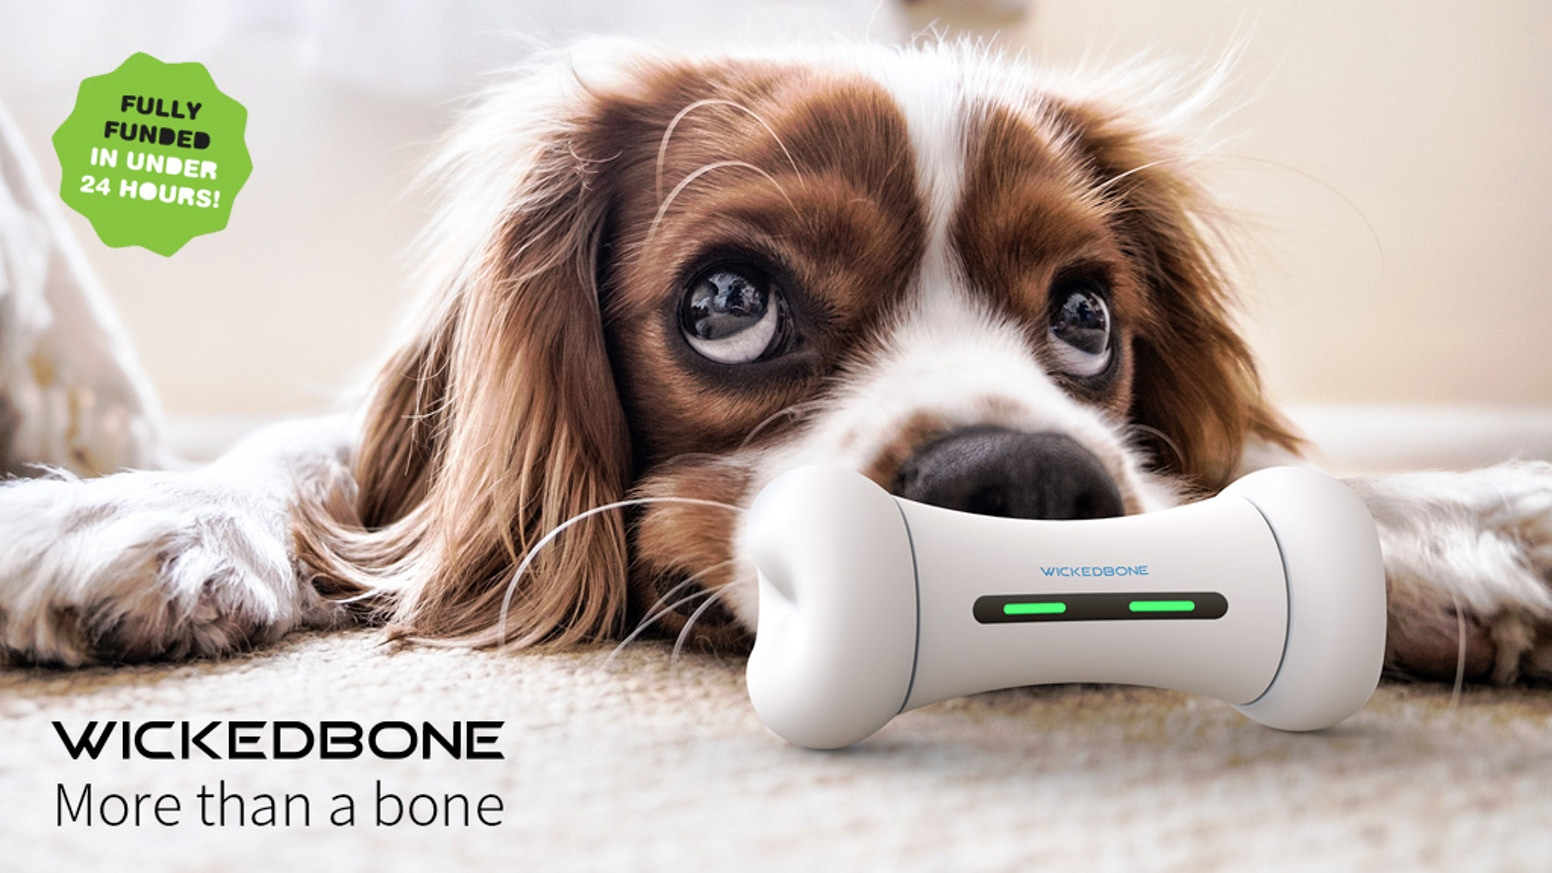 The delightfully smart, fun and wicked bone that will keep your dog entertained all day